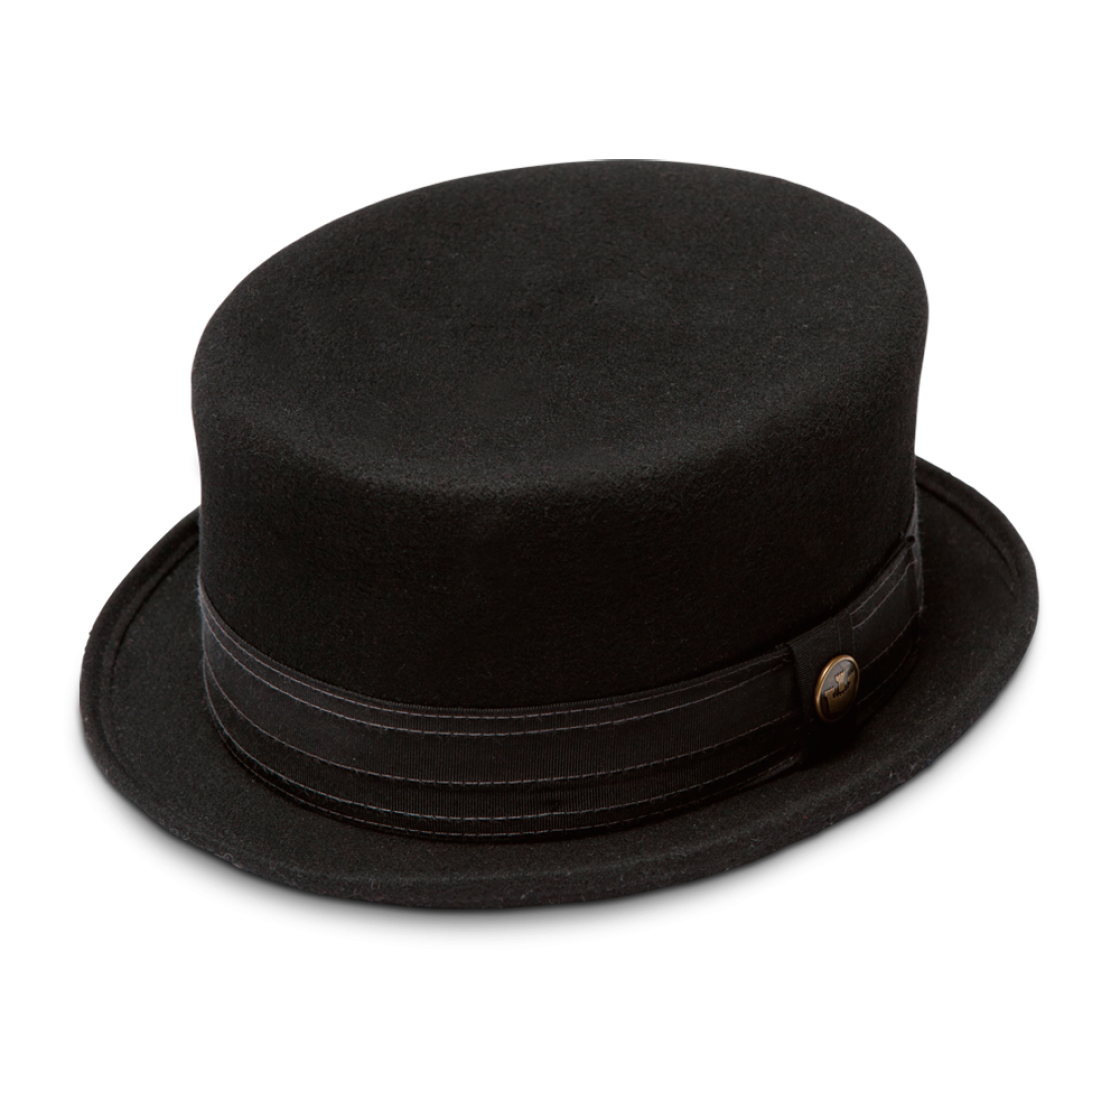 Black Small Hat PNG Image